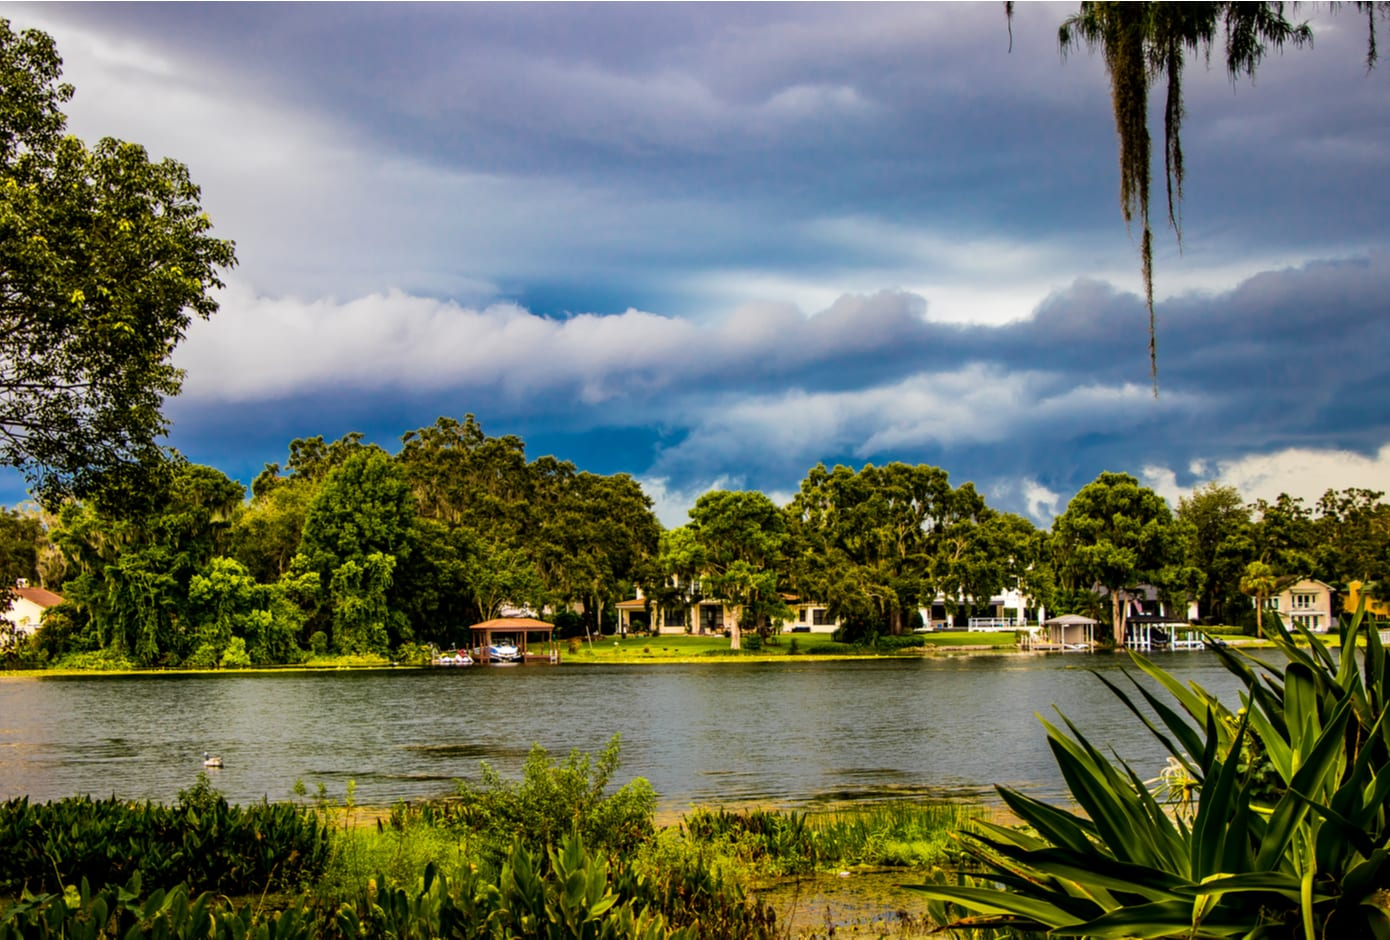 View of the Kraft Gardens in Winter Park, Florida.